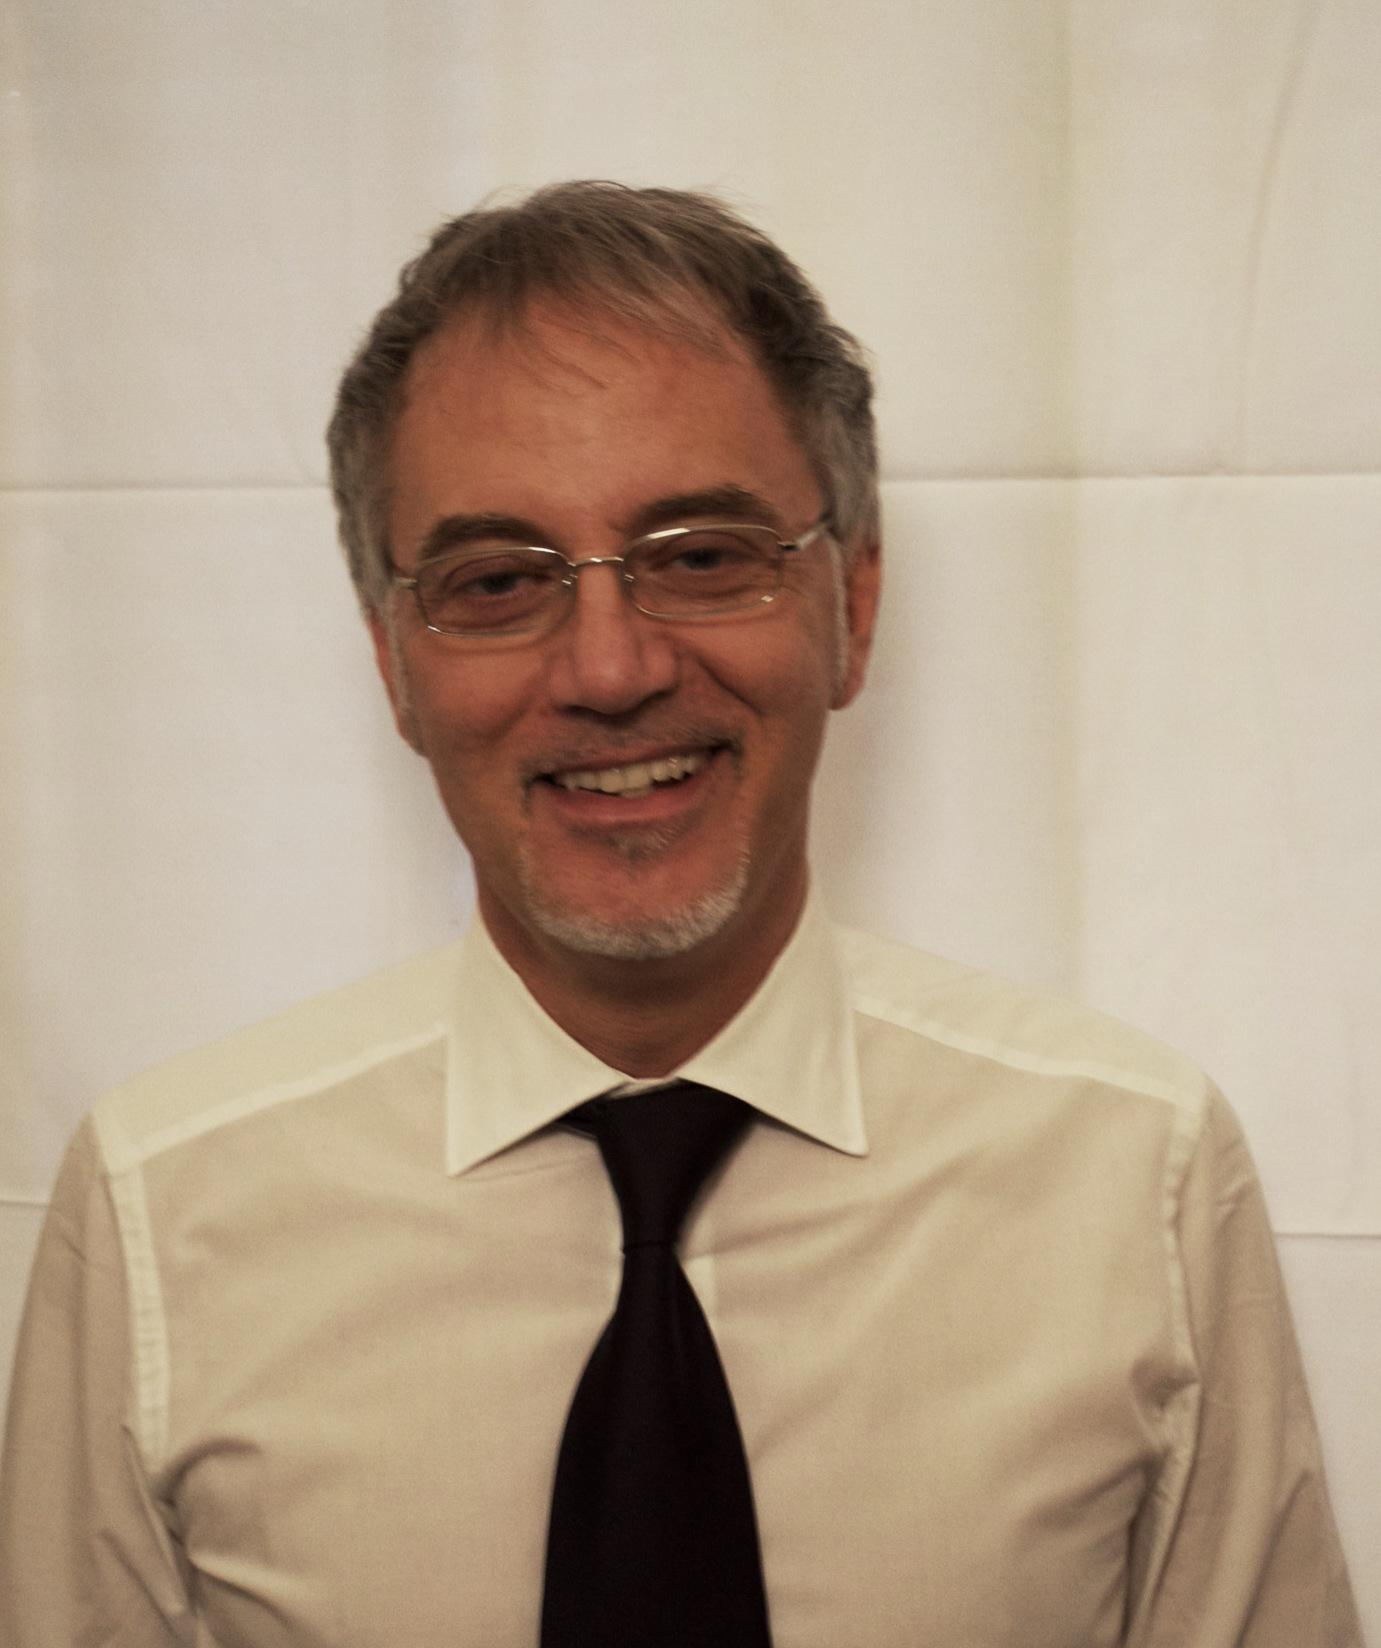 Workshop in Manageritalia – era presente il nostro collaboratore Antonio Zanzottera